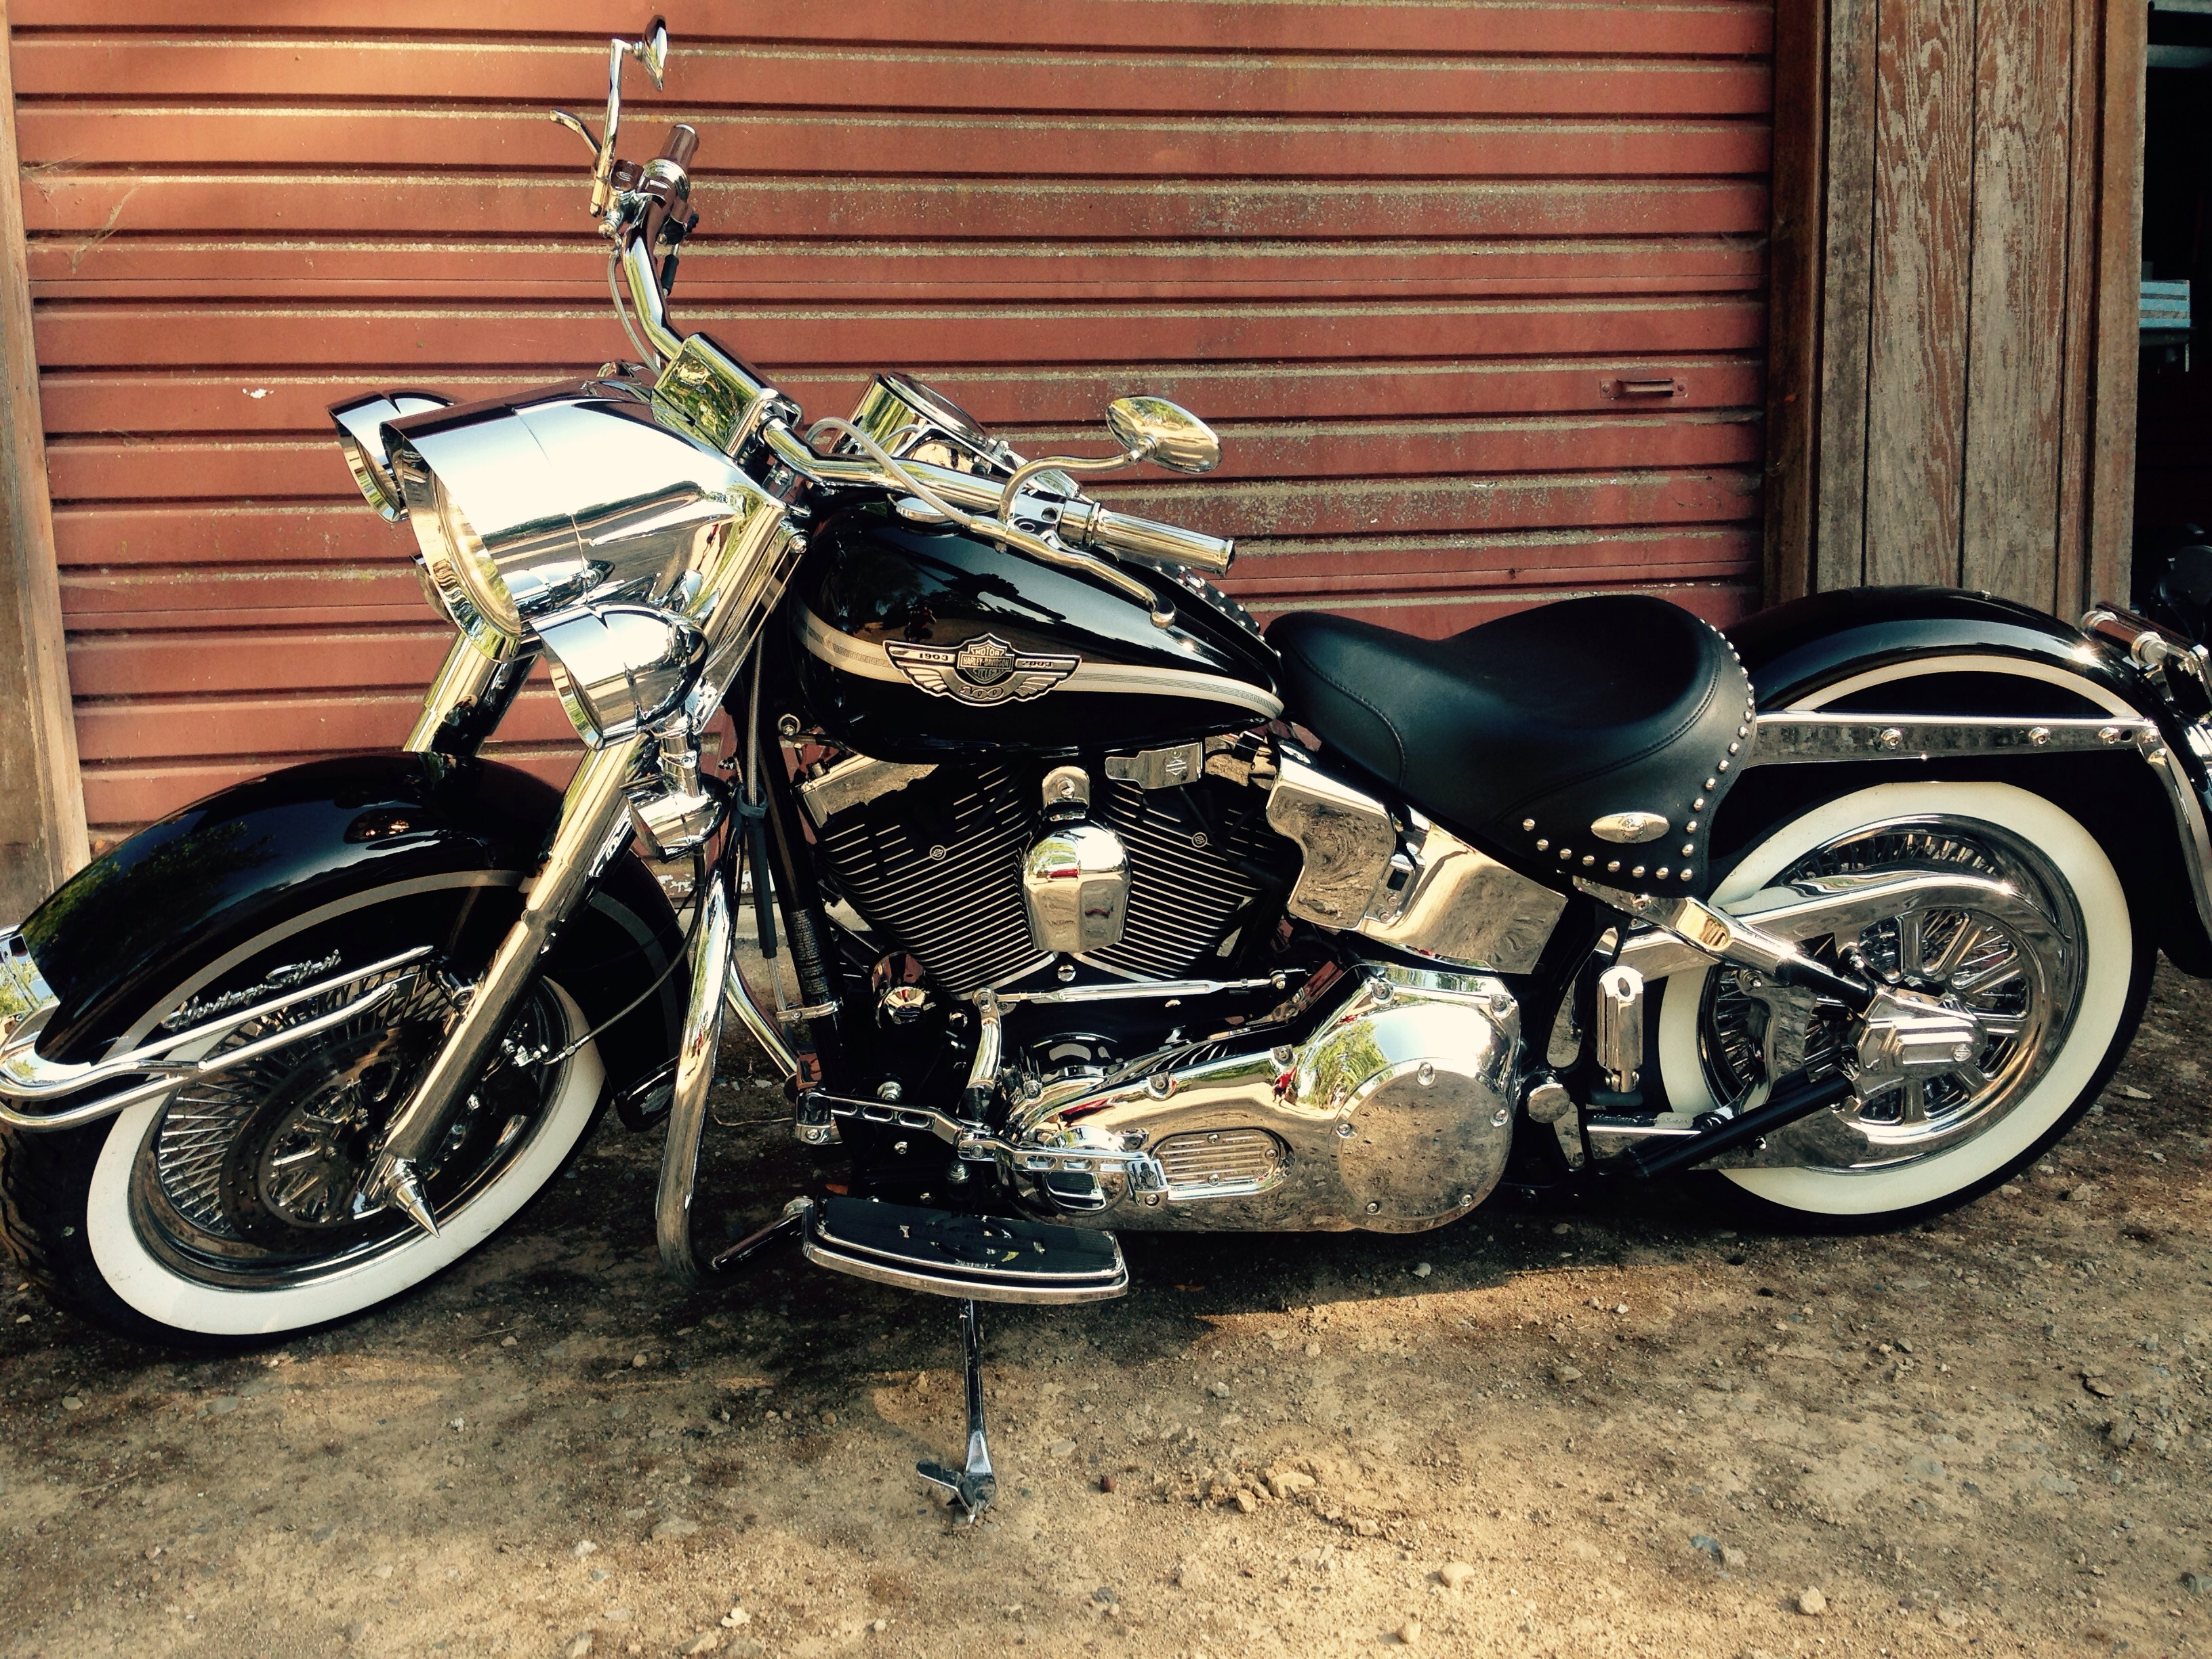 2002 harley davidson flstci heritage softail classic injection pics specs and information. Black Bedroom Furniture Sets. Home Design Ideas